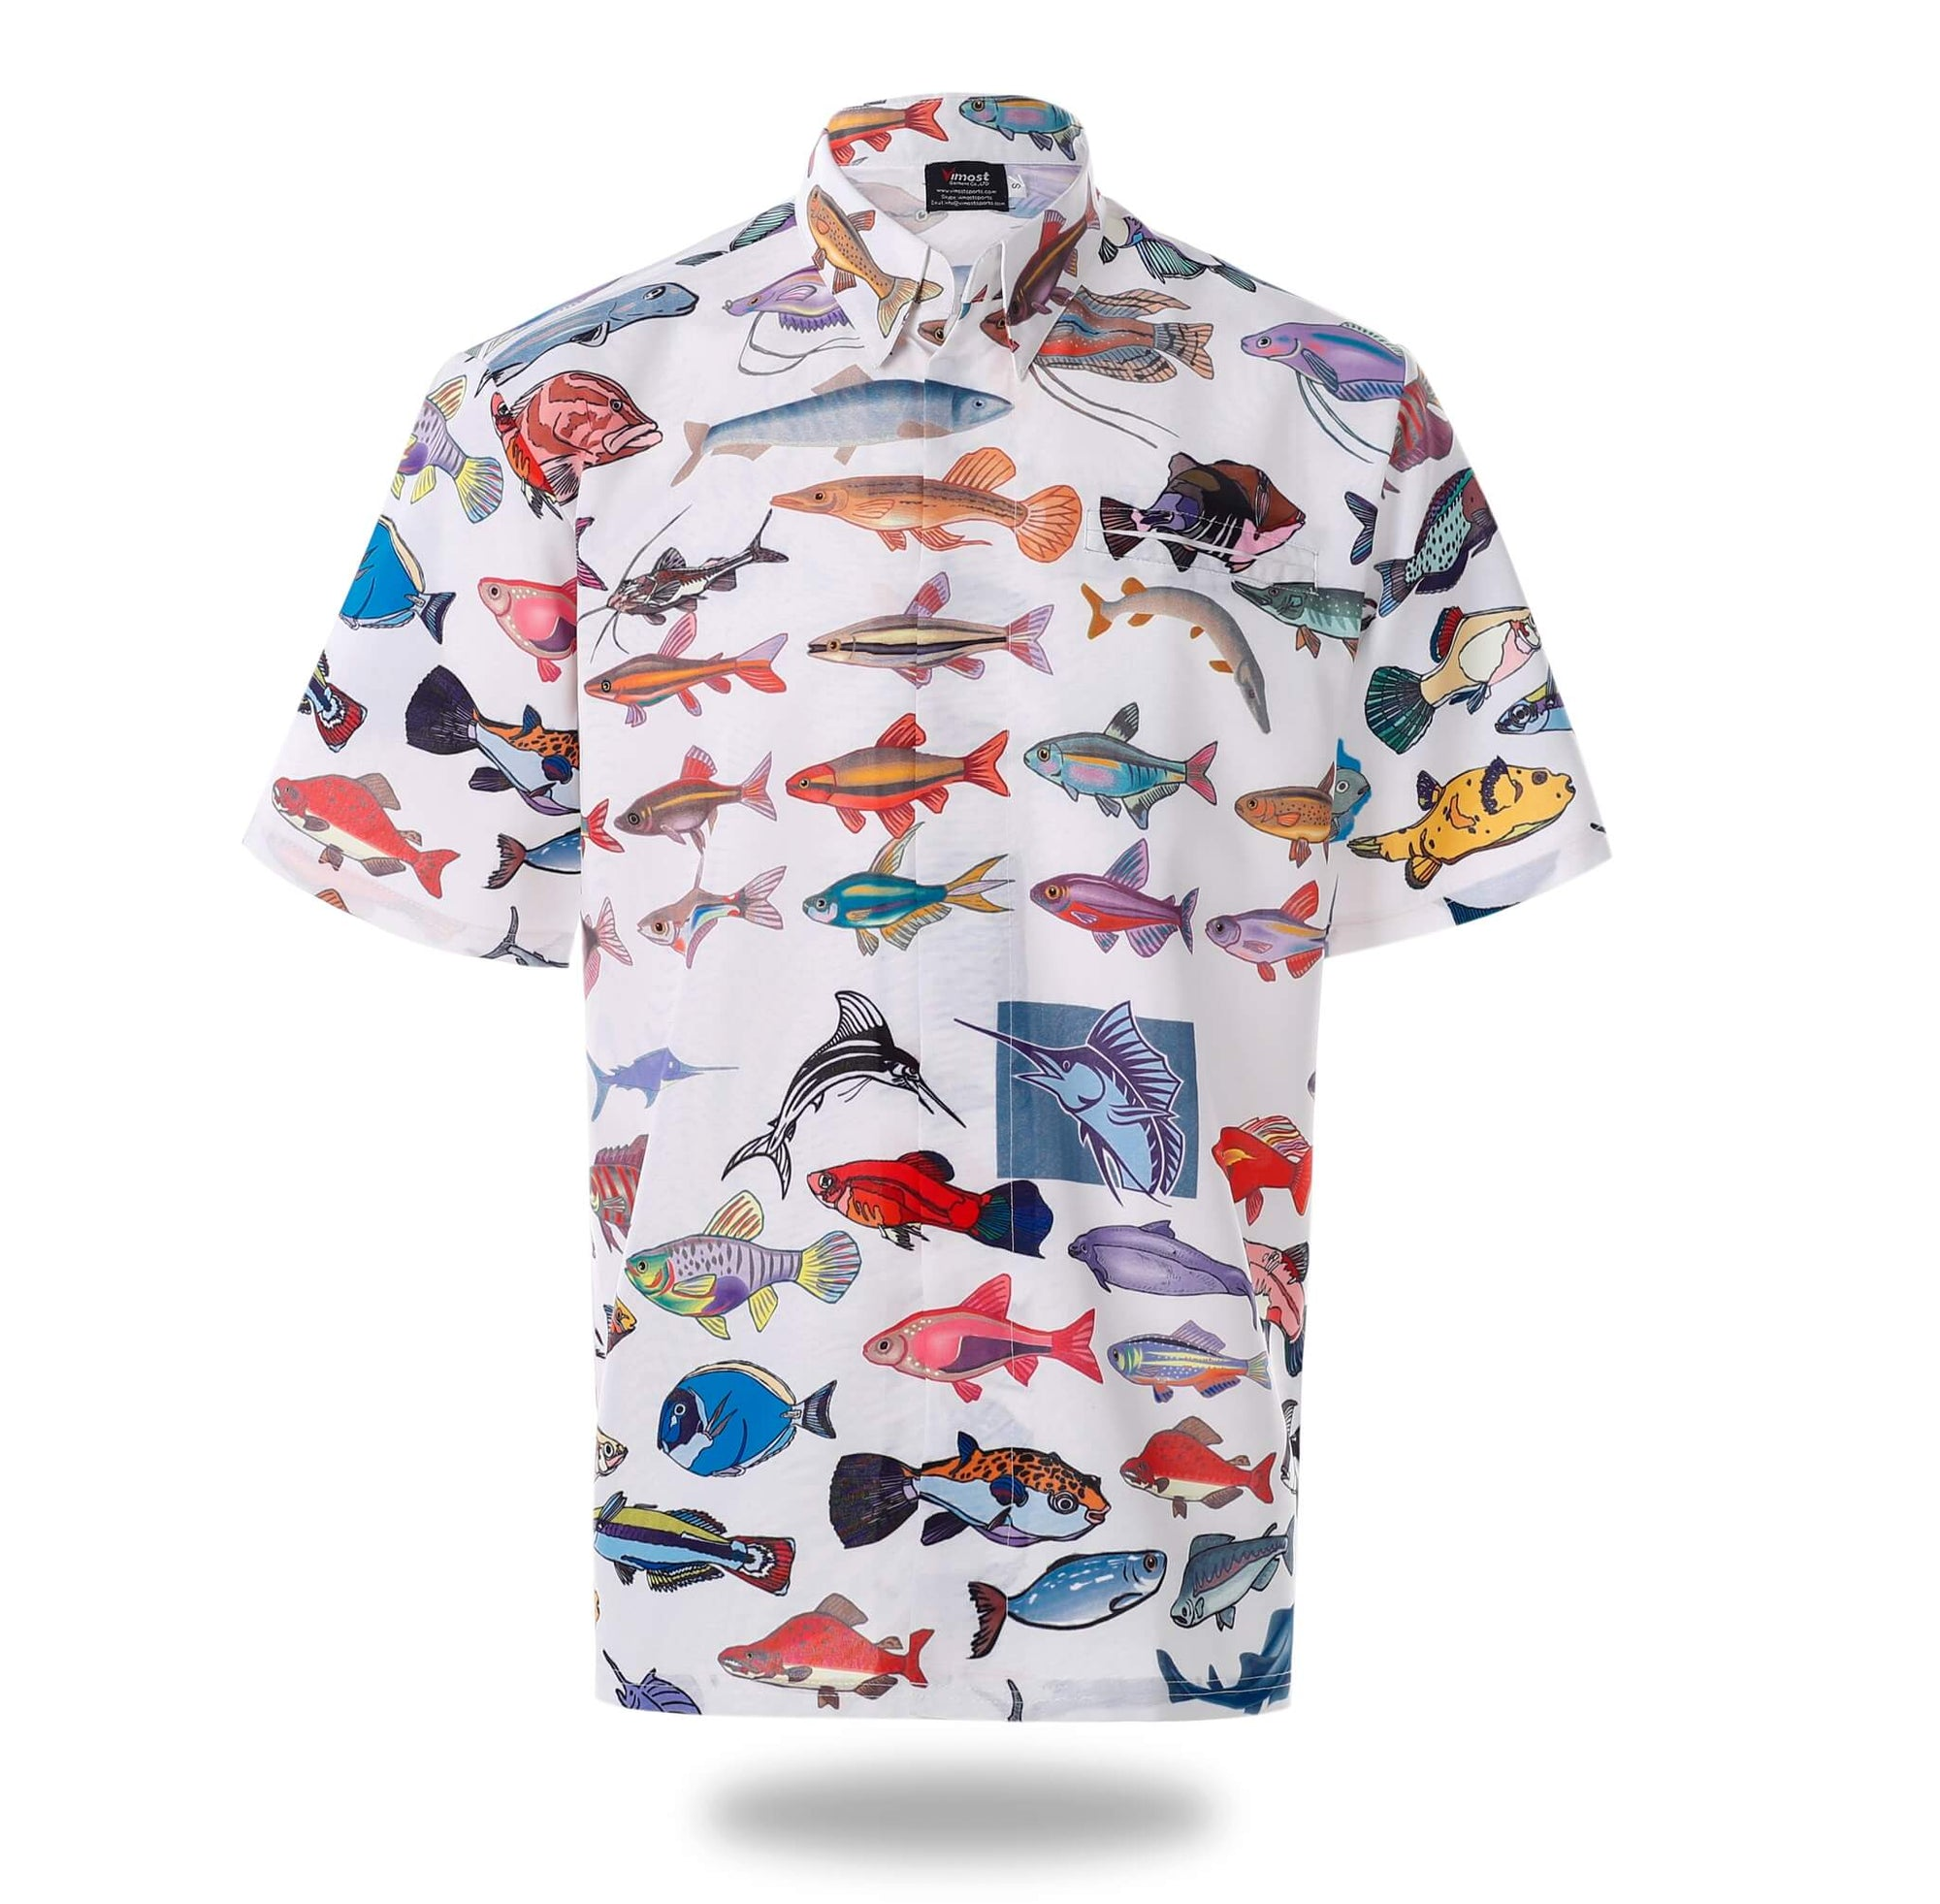 Fishes Design Top Quality Fishing Shirts